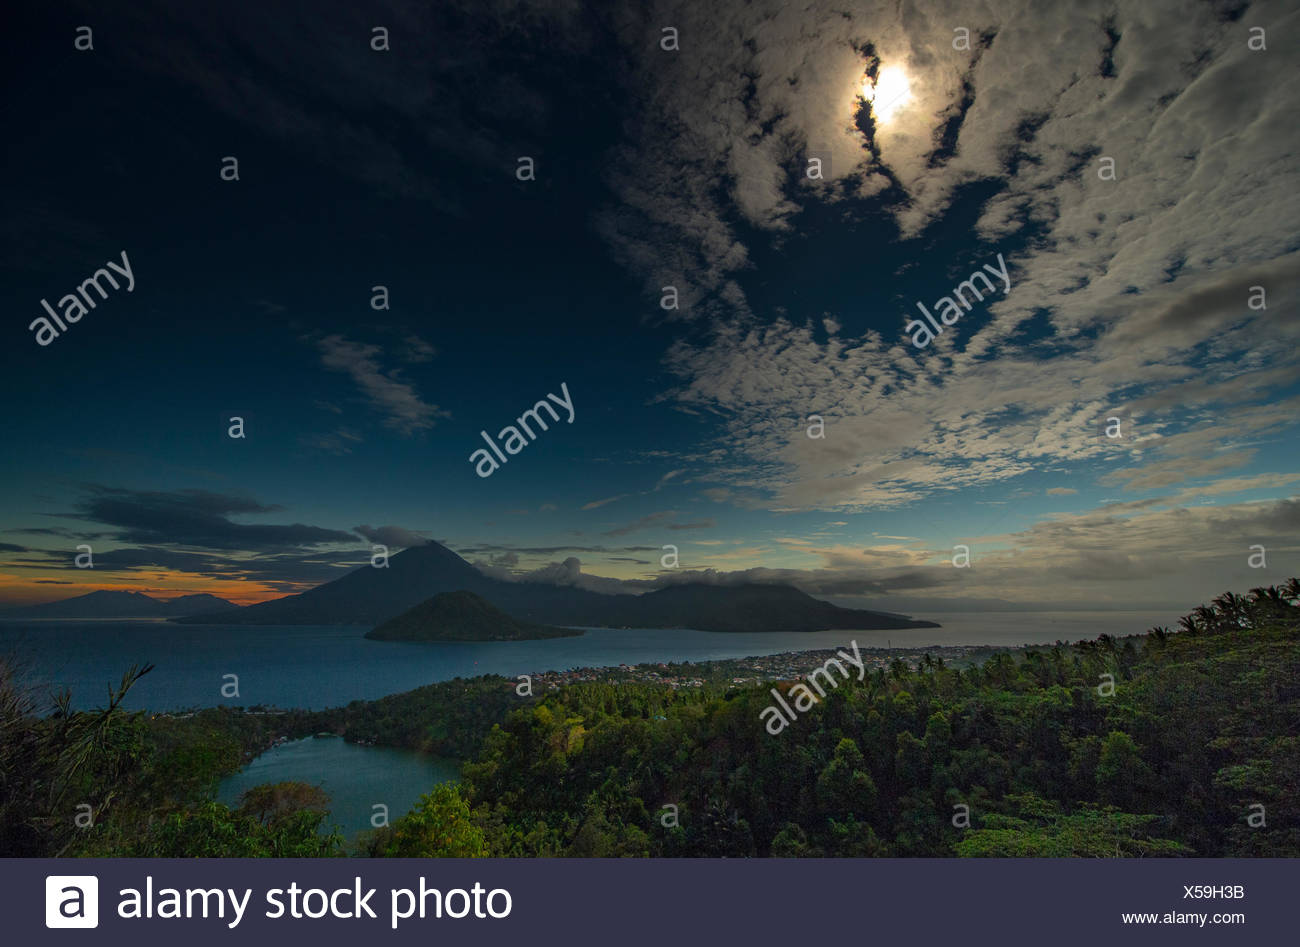 A rainforest seconds before a total solar eclipse. - Stock Image